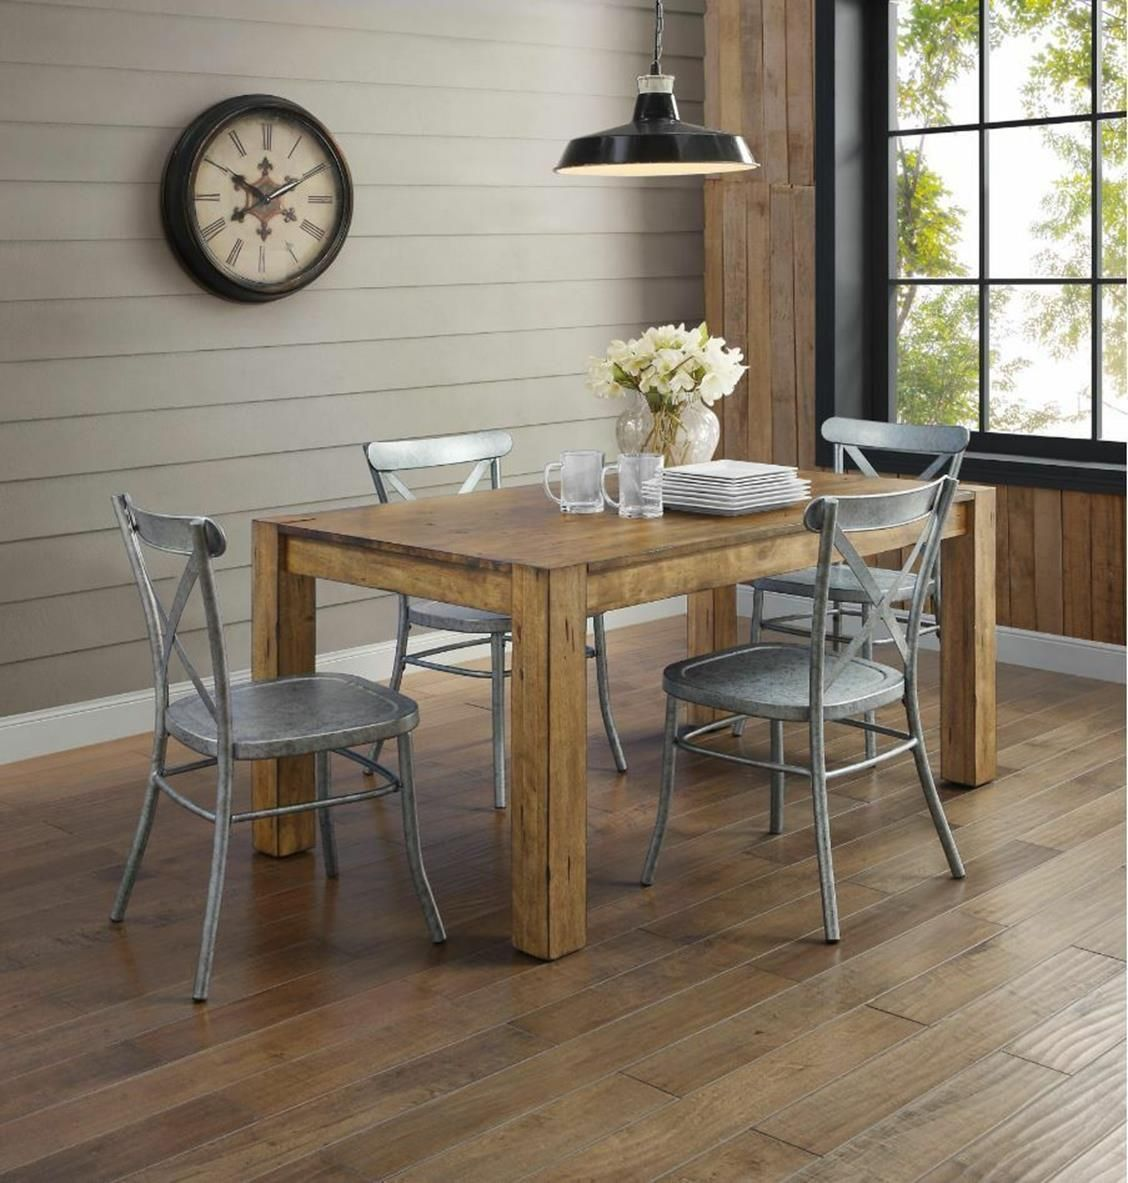 Luxury Farmhouse Dining Table Set for Sale The Most